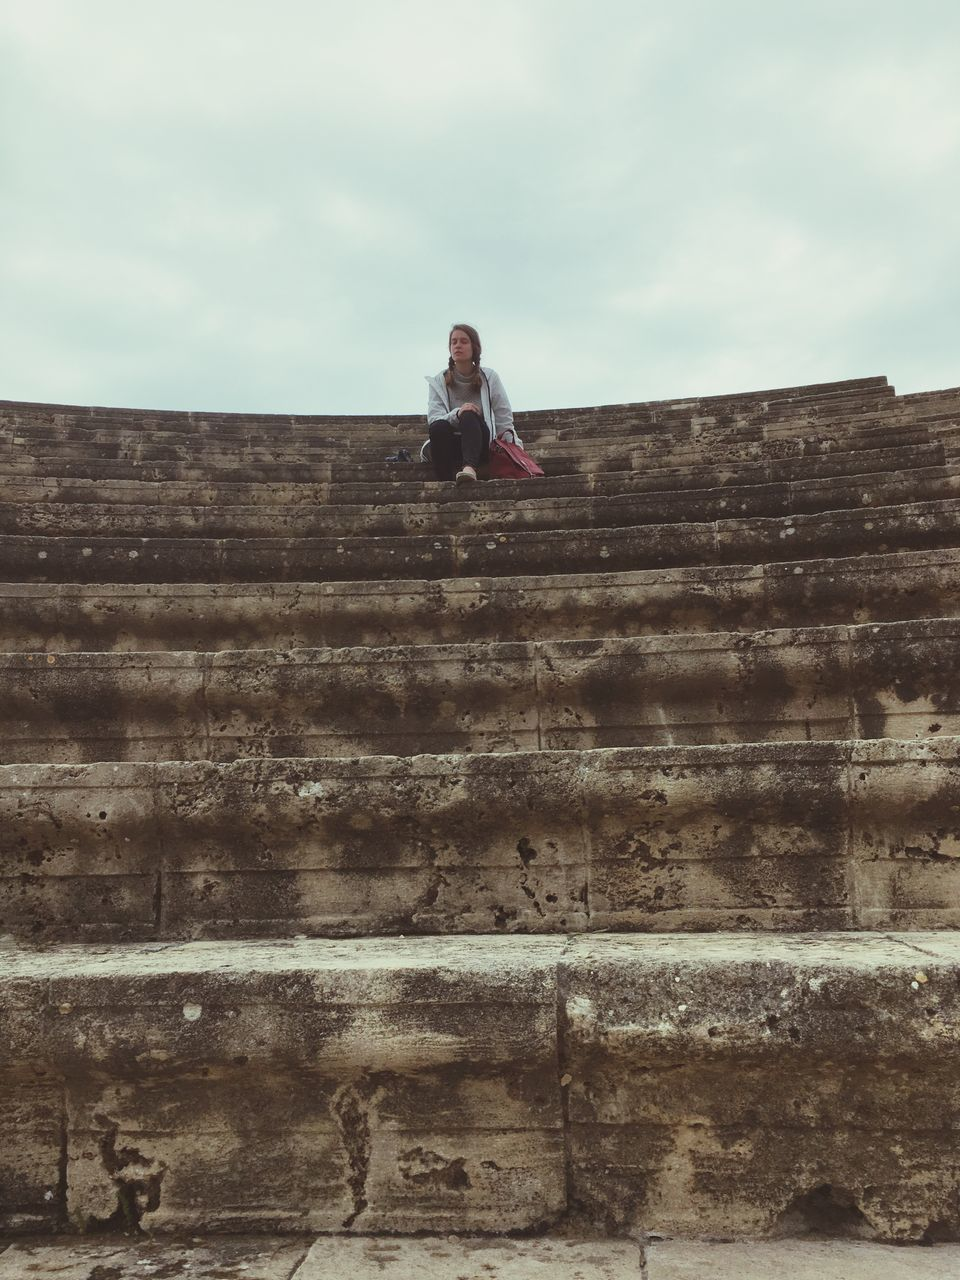 Low Angle View Of Woman Sitting At Amphitheater Against Sky